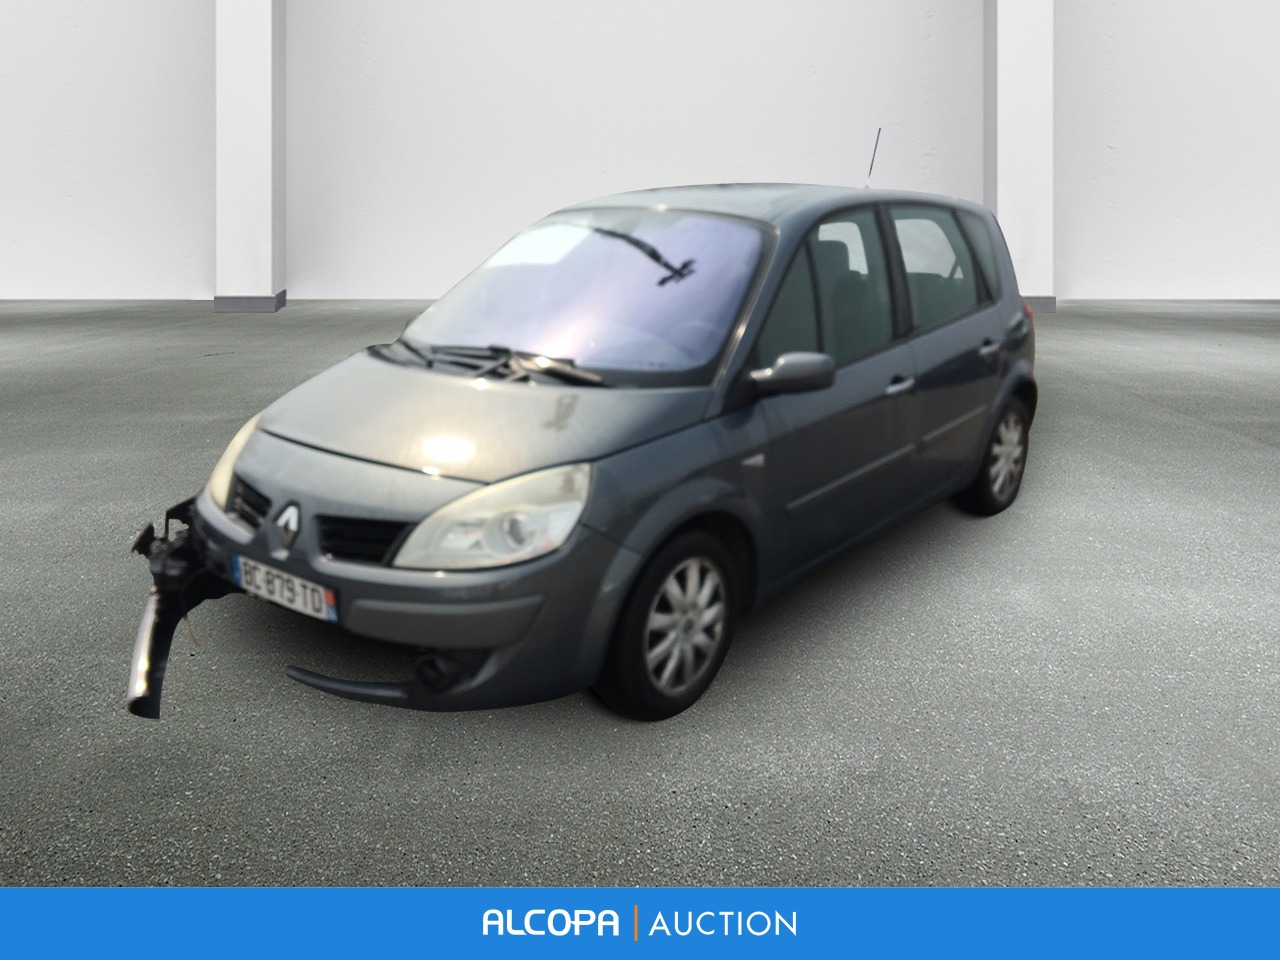 renault scenic ii scenic 1 5 dci 105 eco2 dynamique lyon alcopa auction. Black Bedroom Furniture Sets. Home Design Ideas